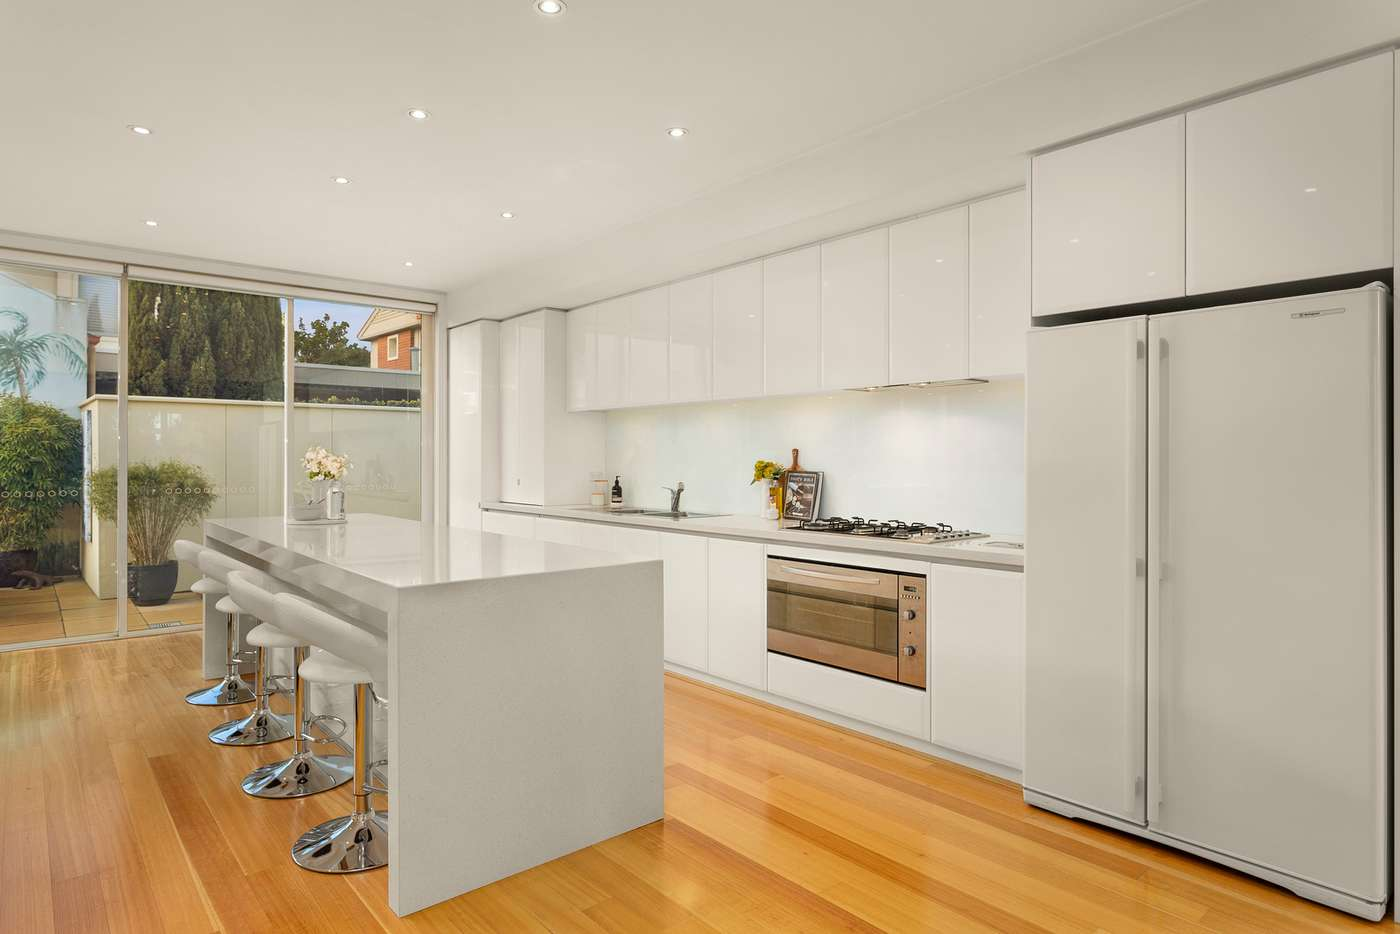 Fifth view of Homely house listing, 112 Beach Street, Port Melbourne VIC 3207